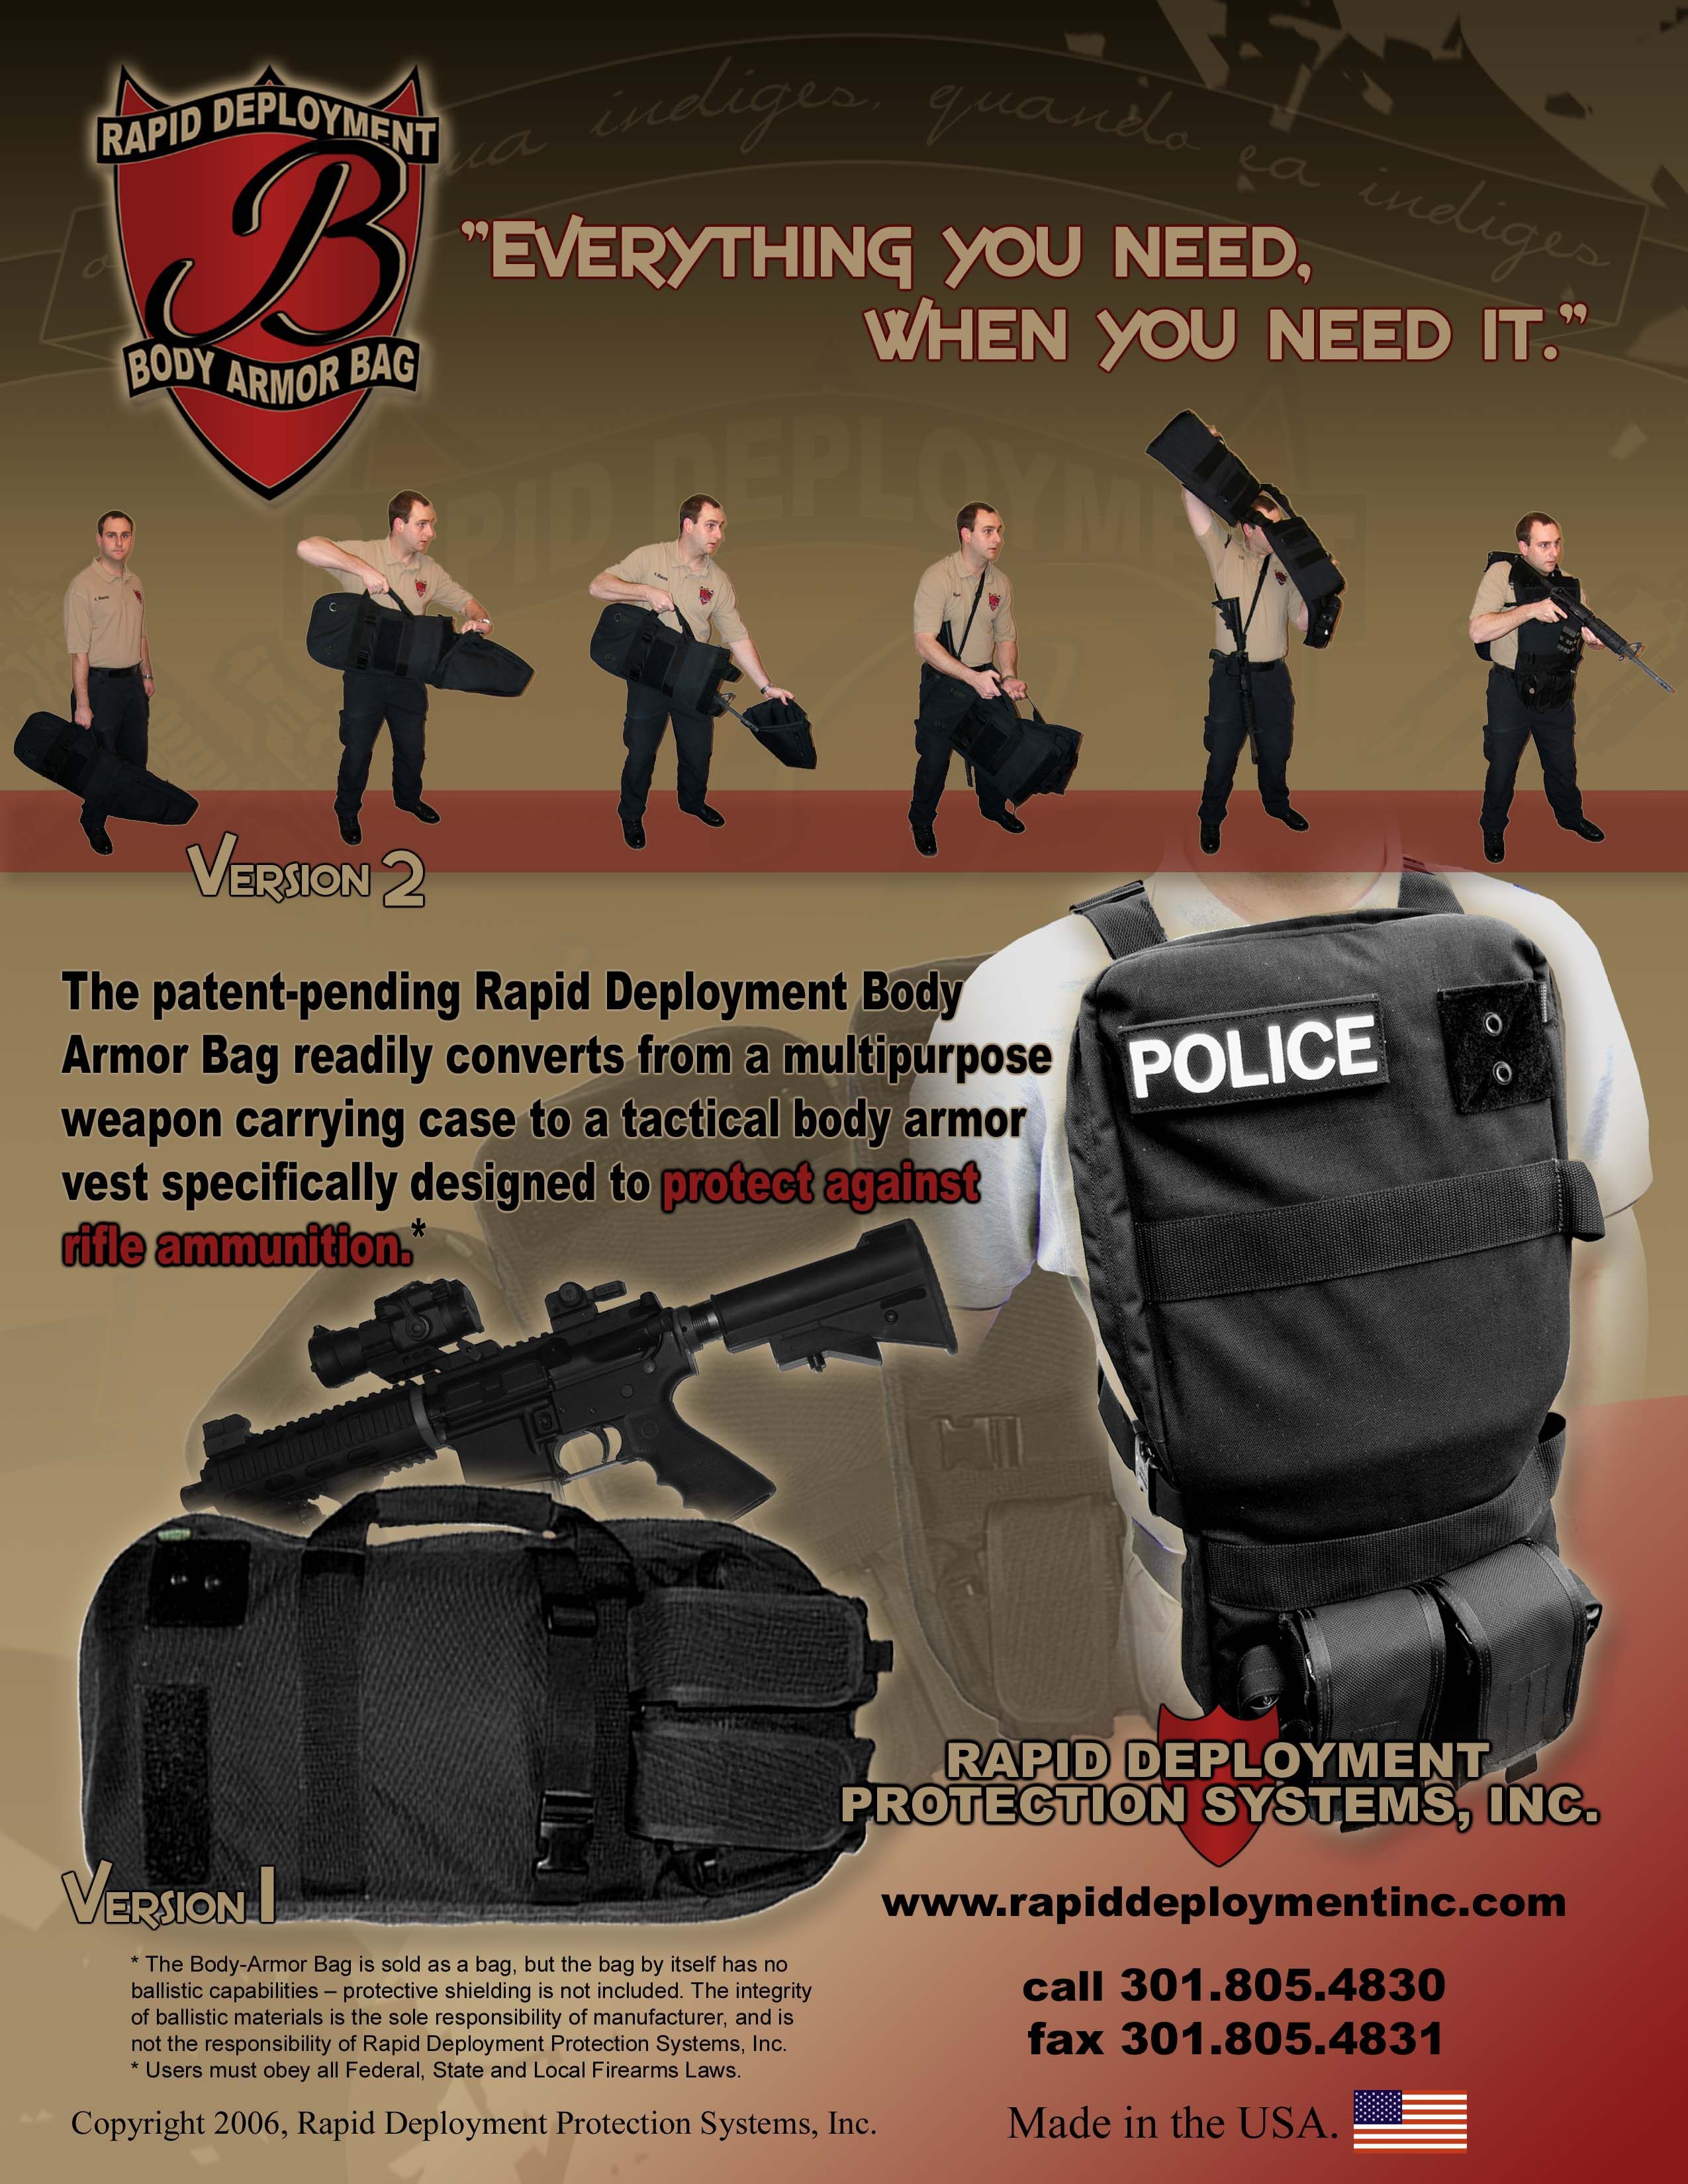 BIG FLYER 300 <!  :en  >Rapid Deployment Body Armor Bag: From Rifle Bag to Body Armor in Seconds<!  :  >